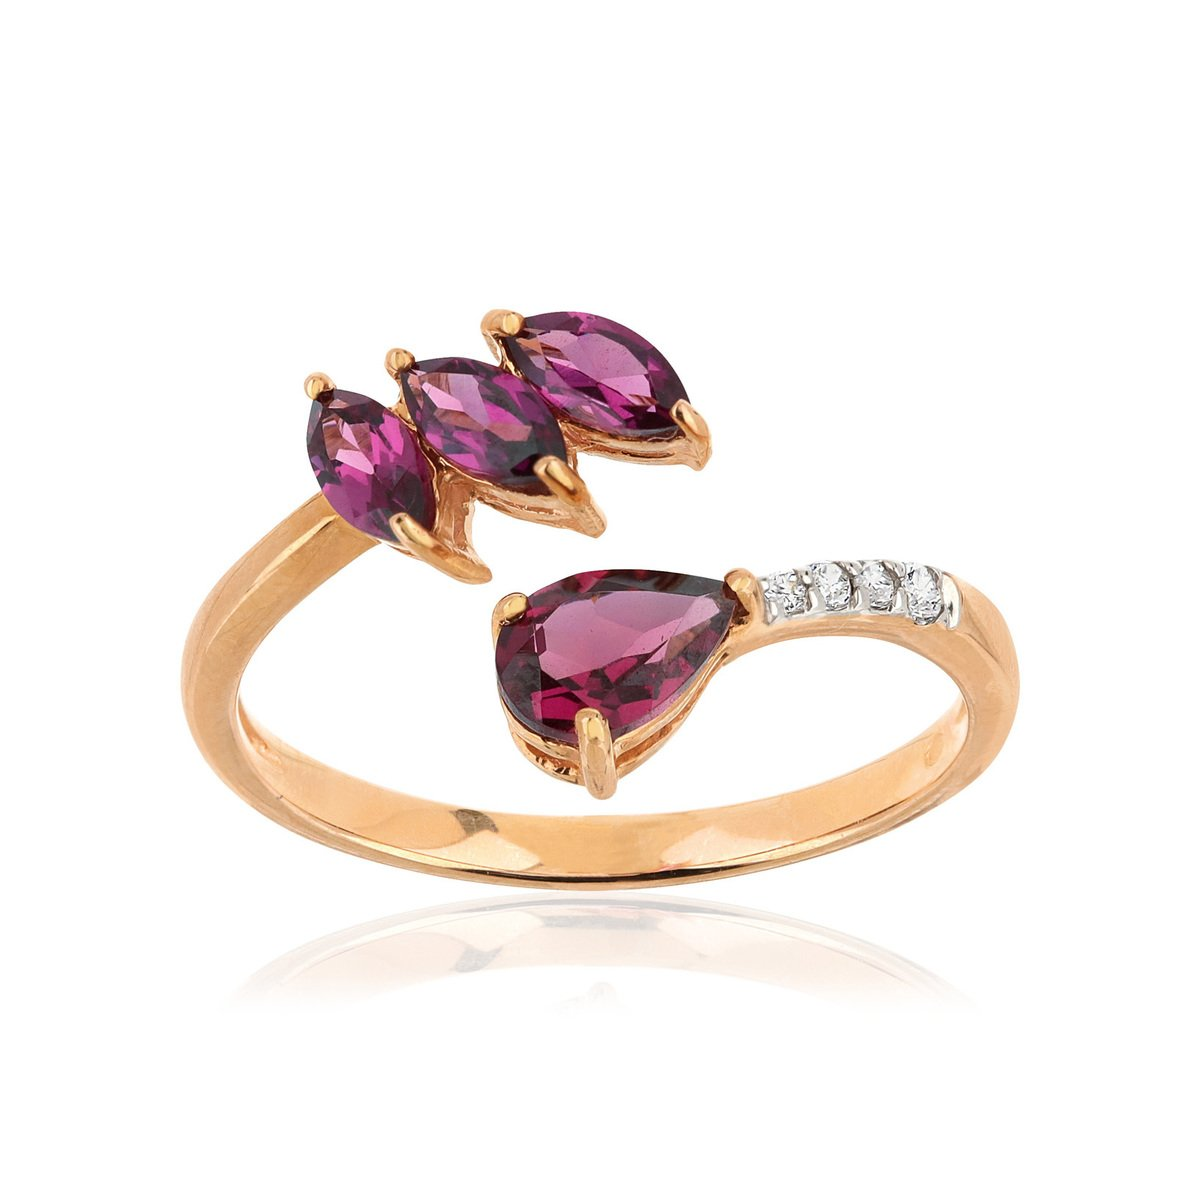 Bague or 375 rose grenat rhodolite saphir diamant - vue V1